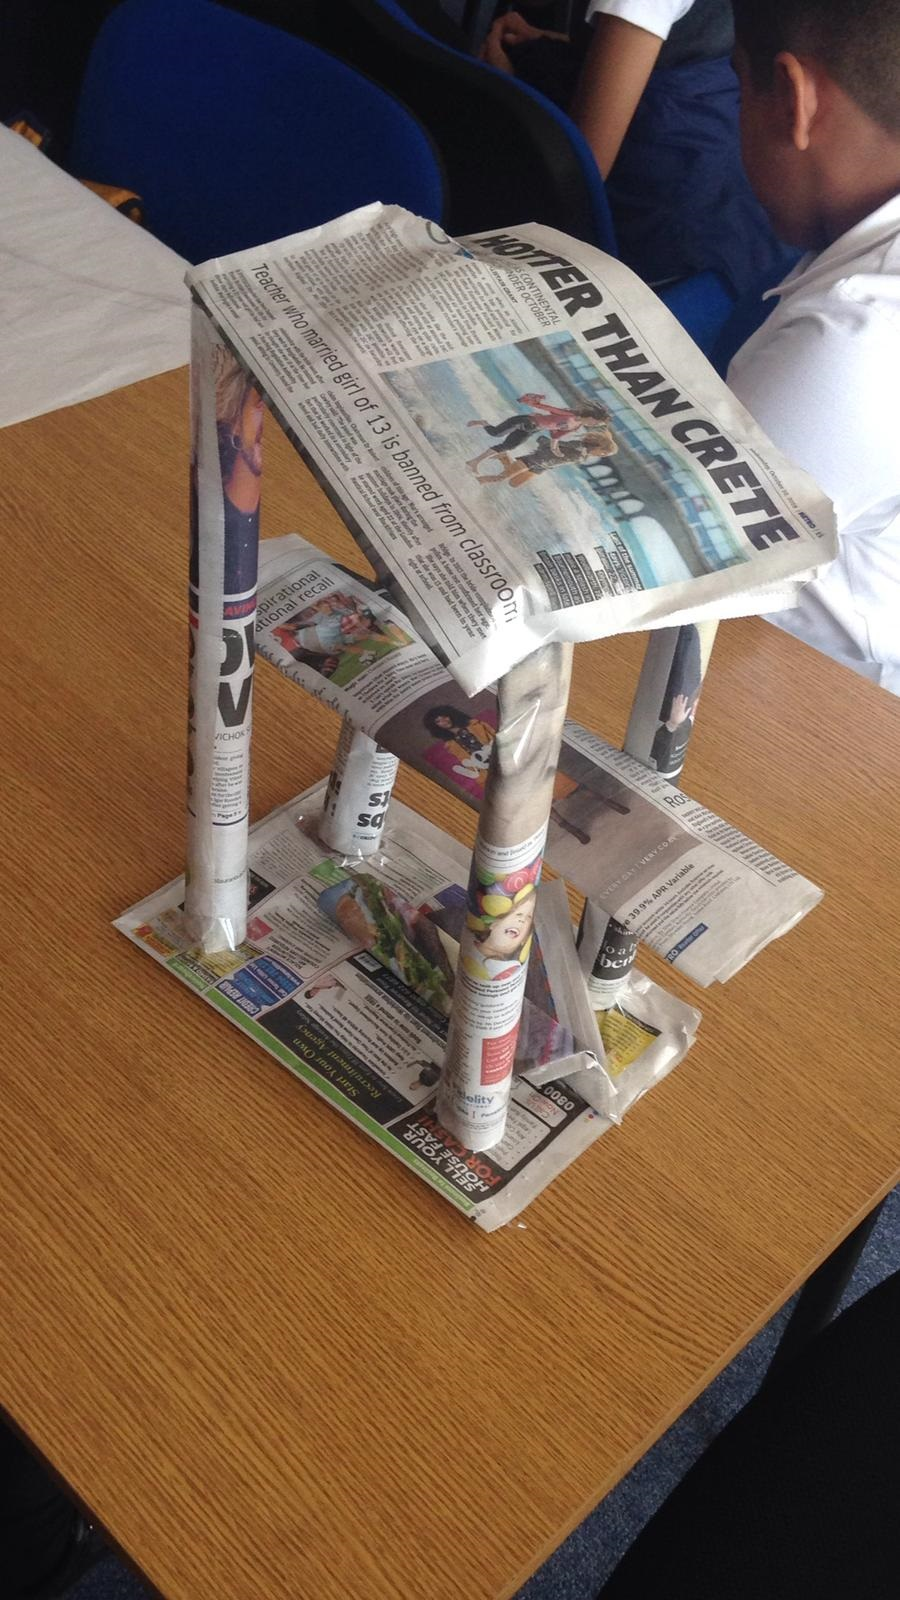 The winning bridge design! A great example of teamwork, problem solving and creativity.